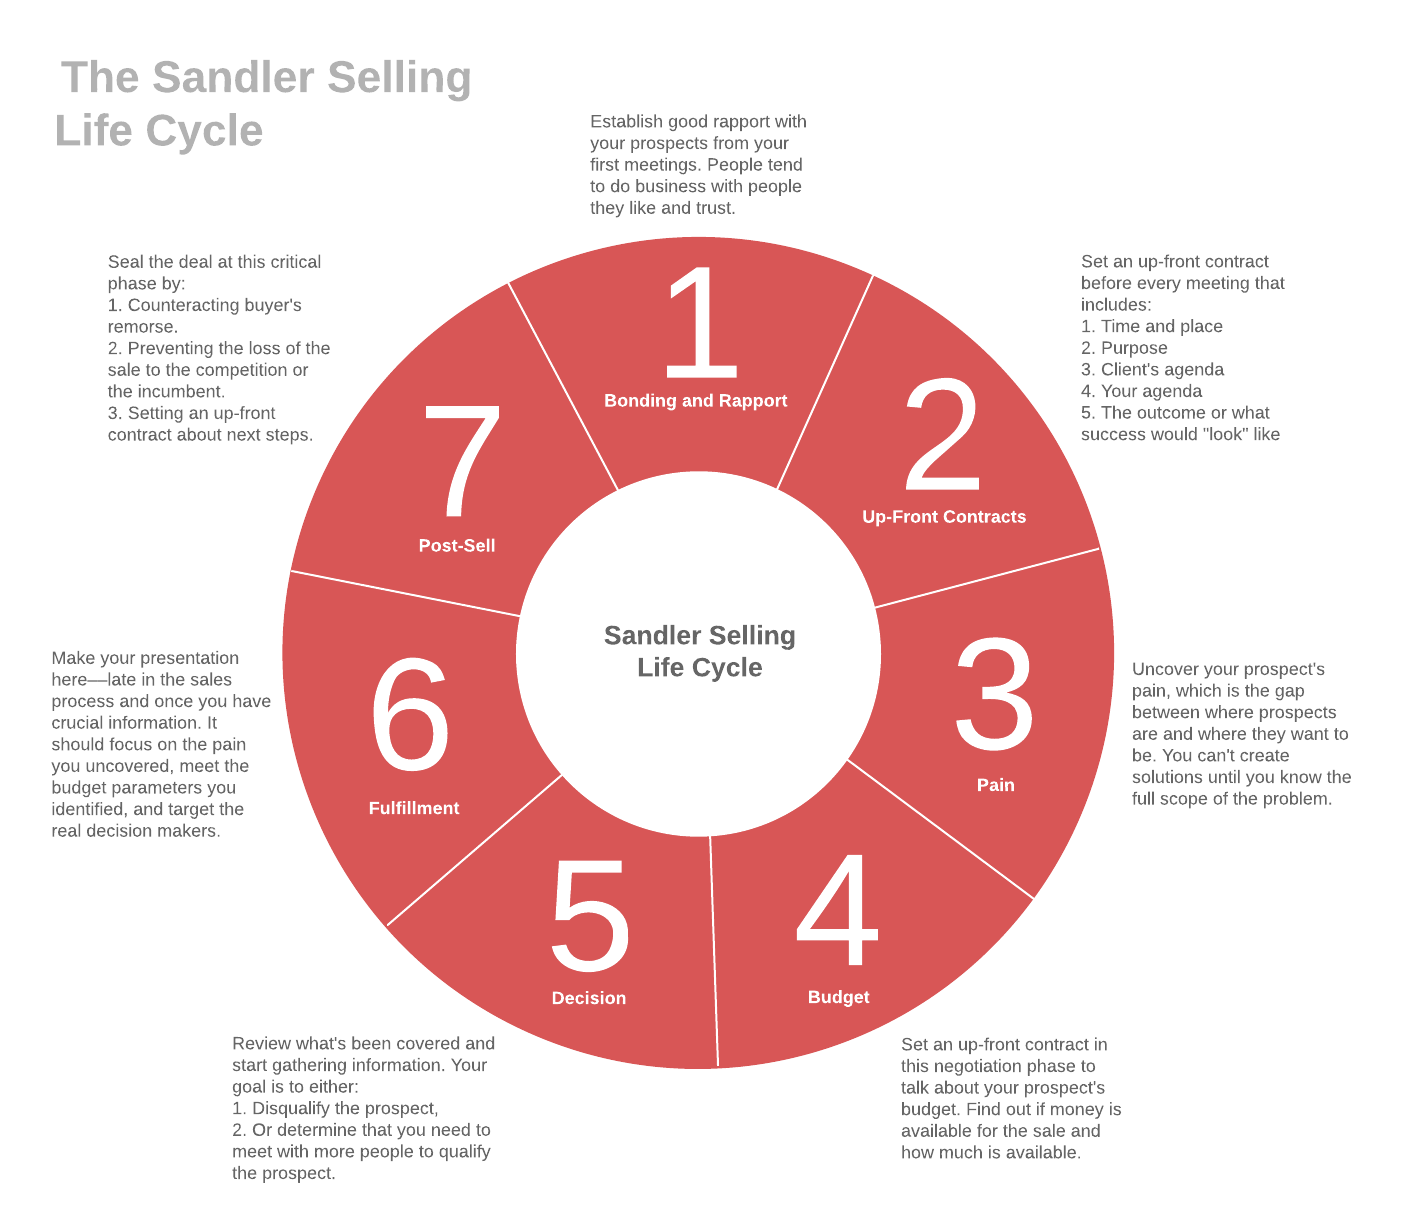 The Sandler Selling Life Cycle chart